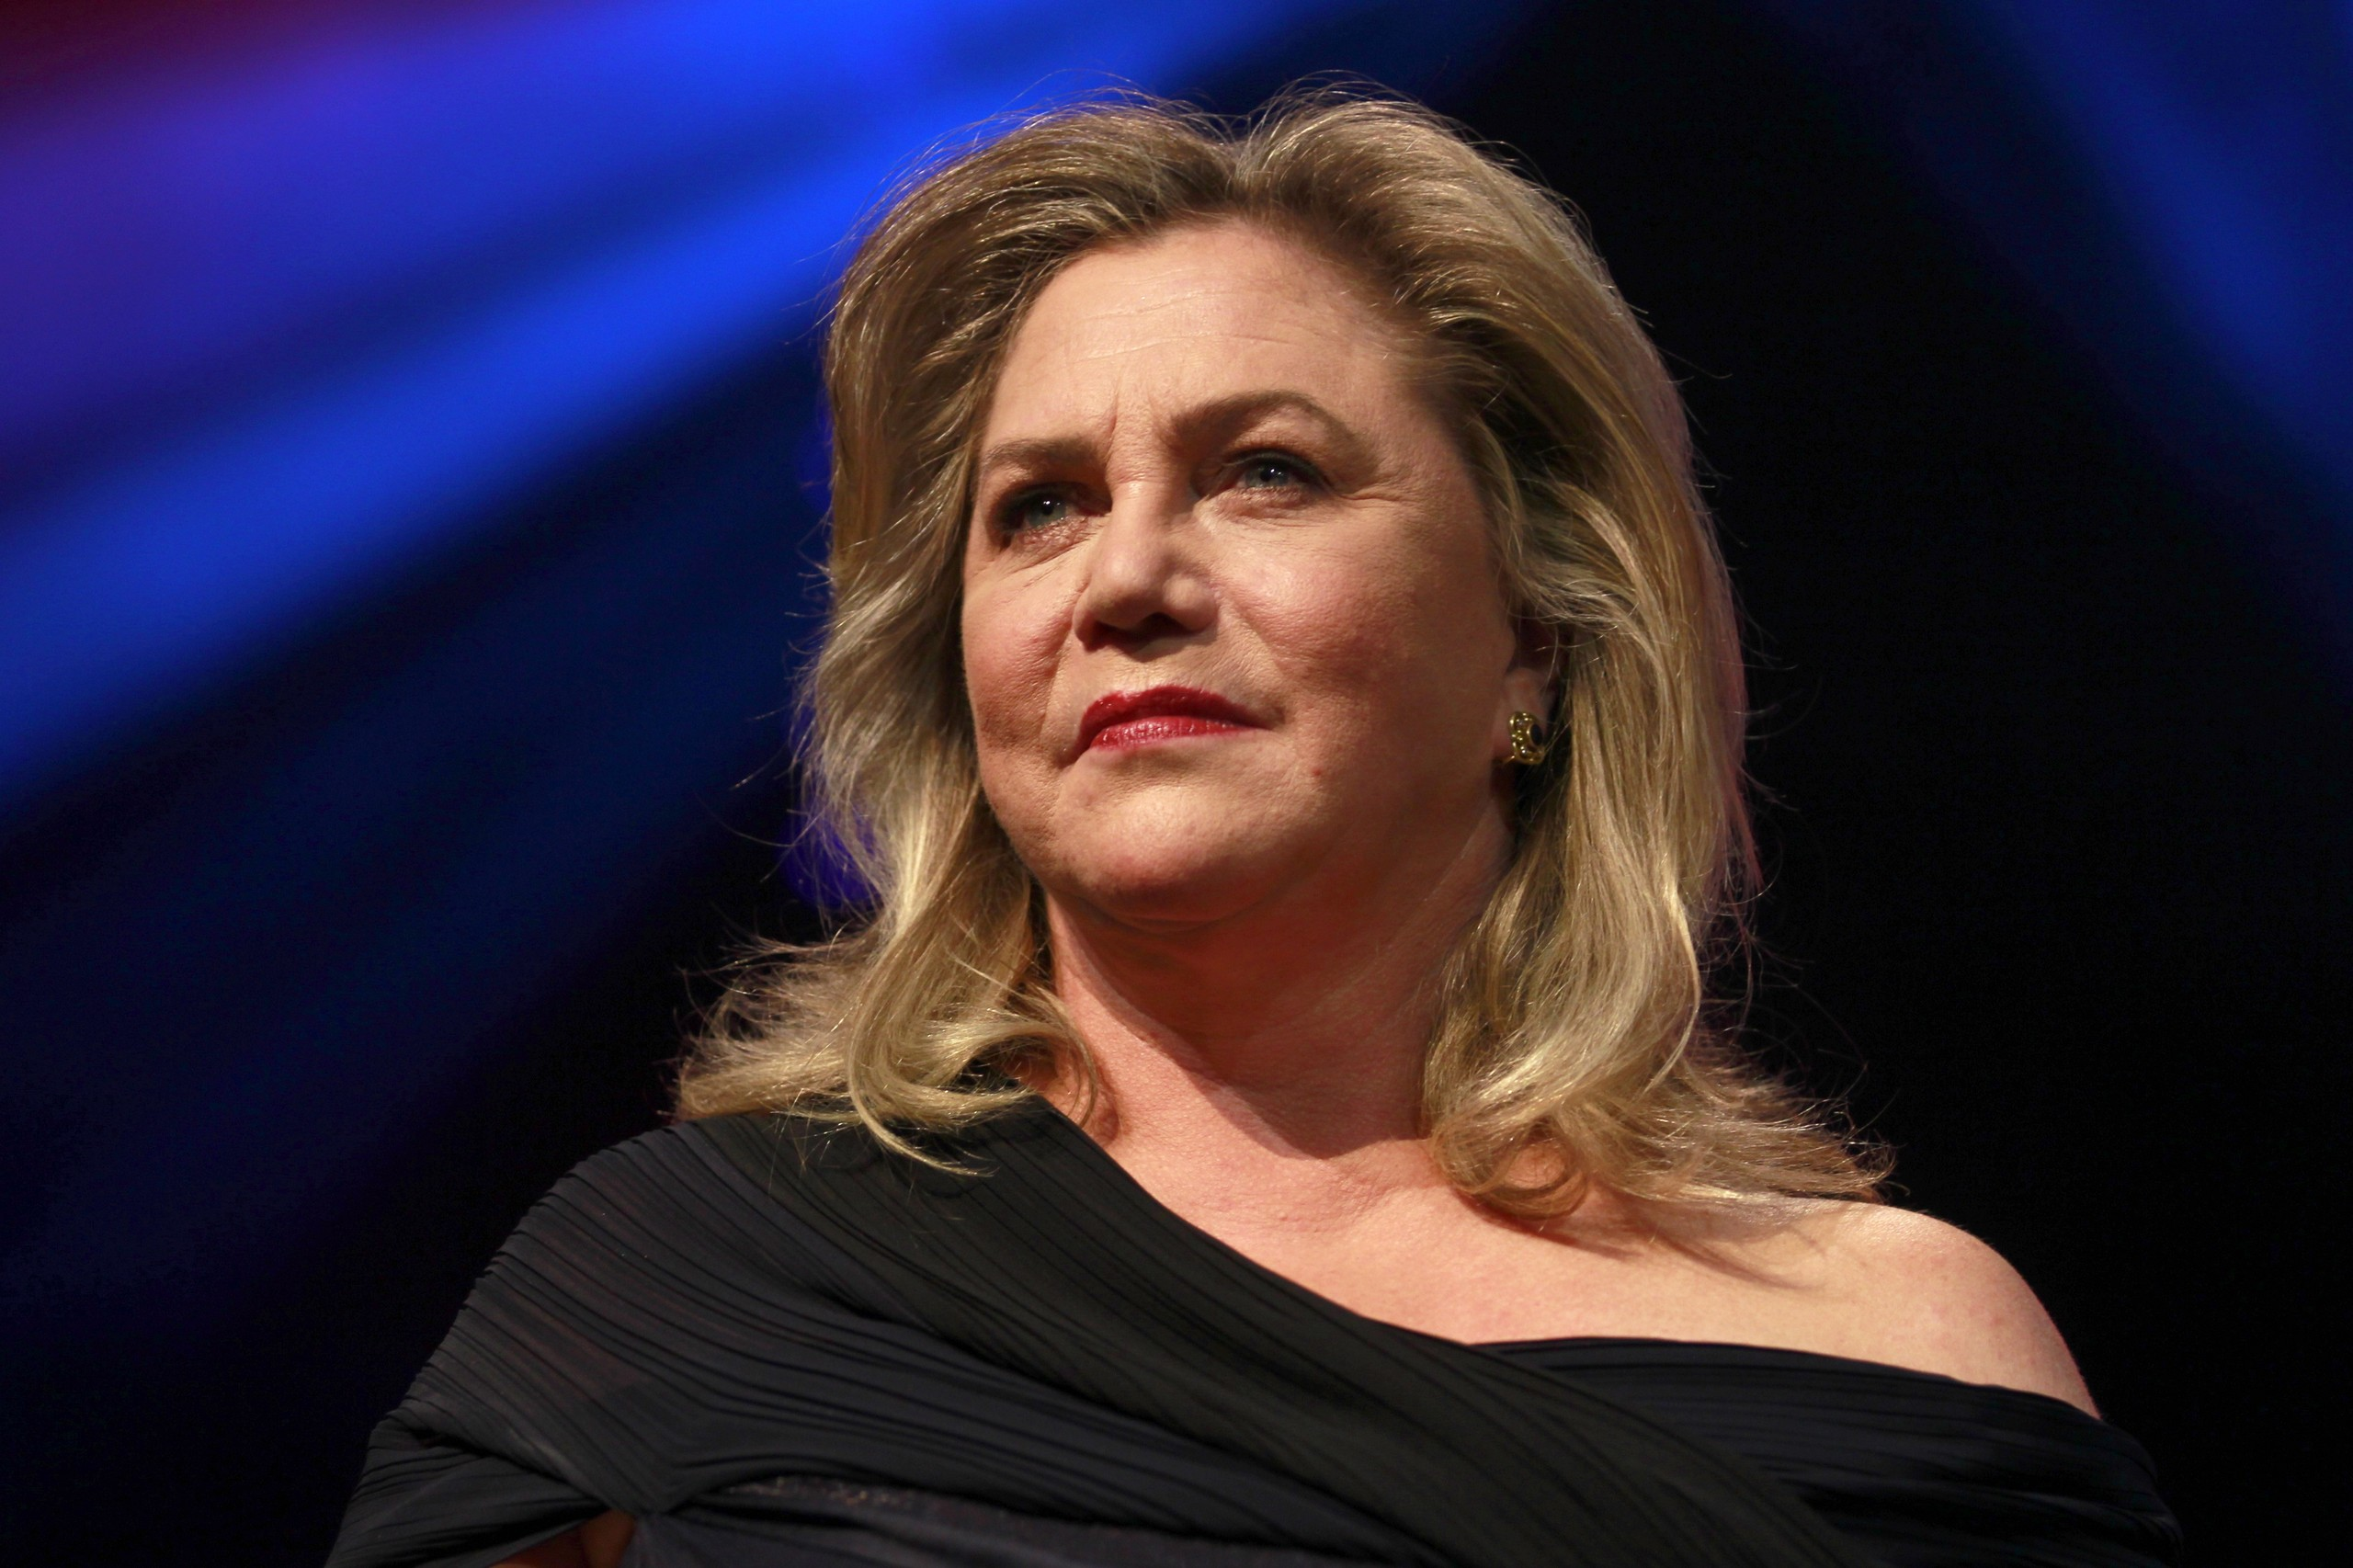 Kathleen Turner in Bakersfield Mist at the Duchess Theatre in London